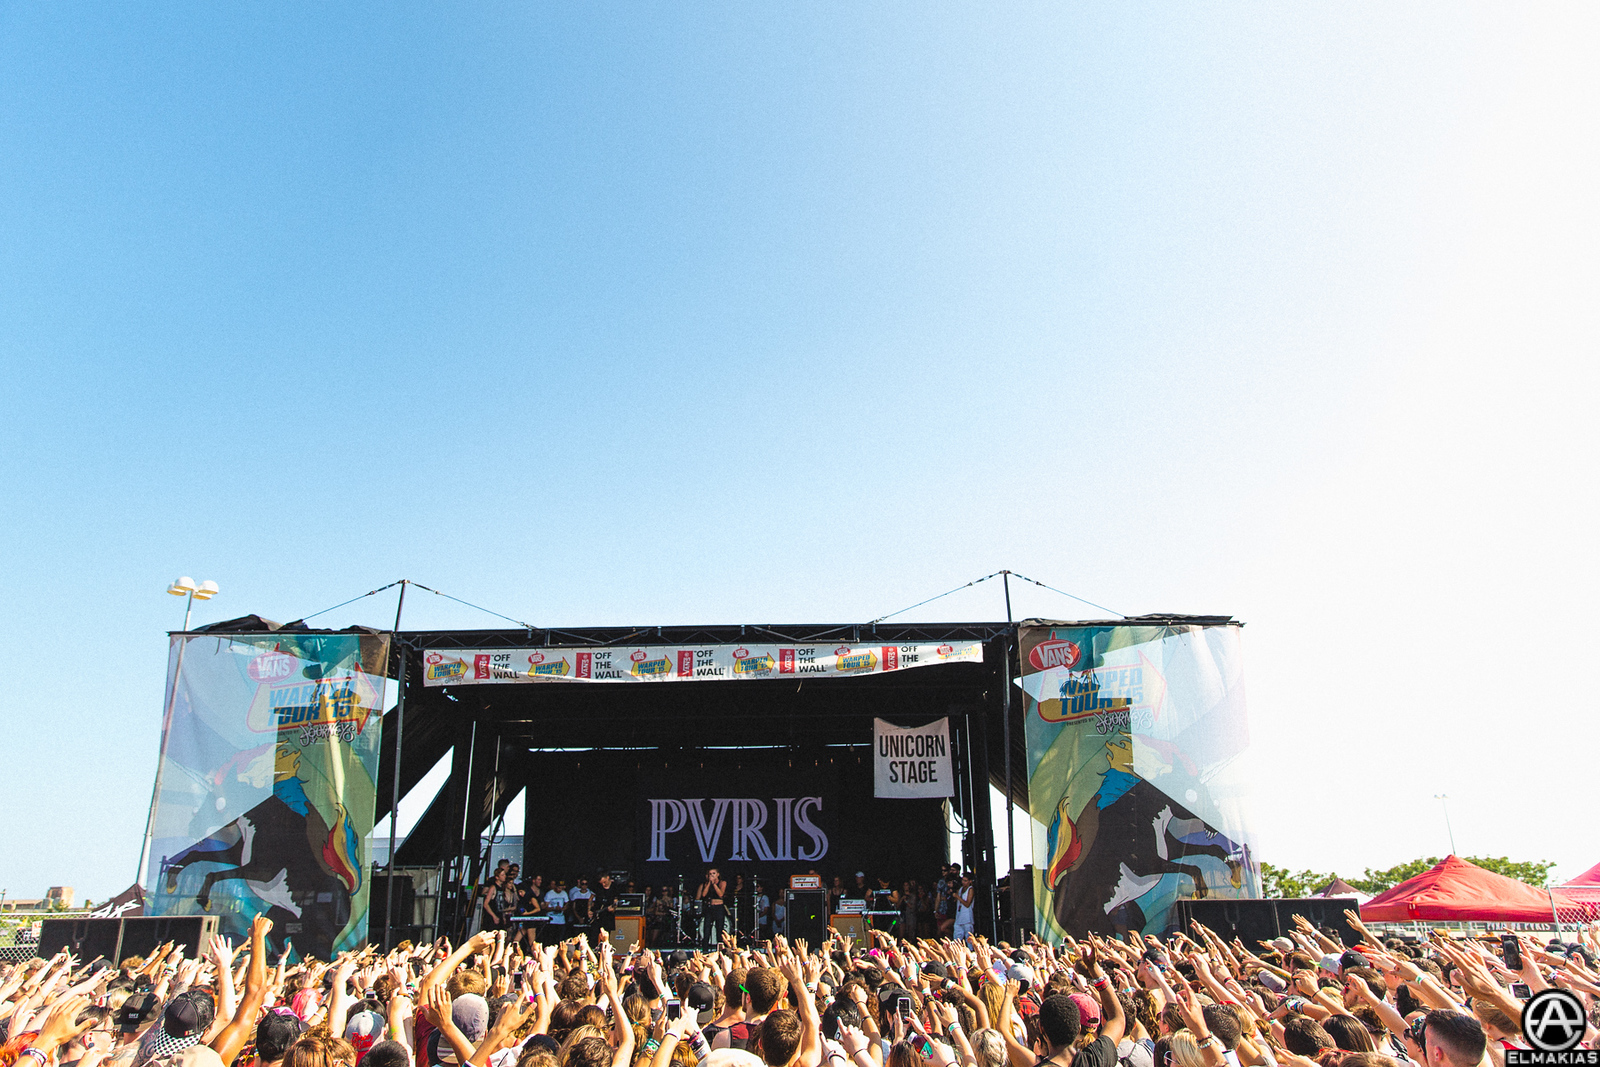 PVRIS live at Vans Warped Tour 2015 by Adam Elmakias